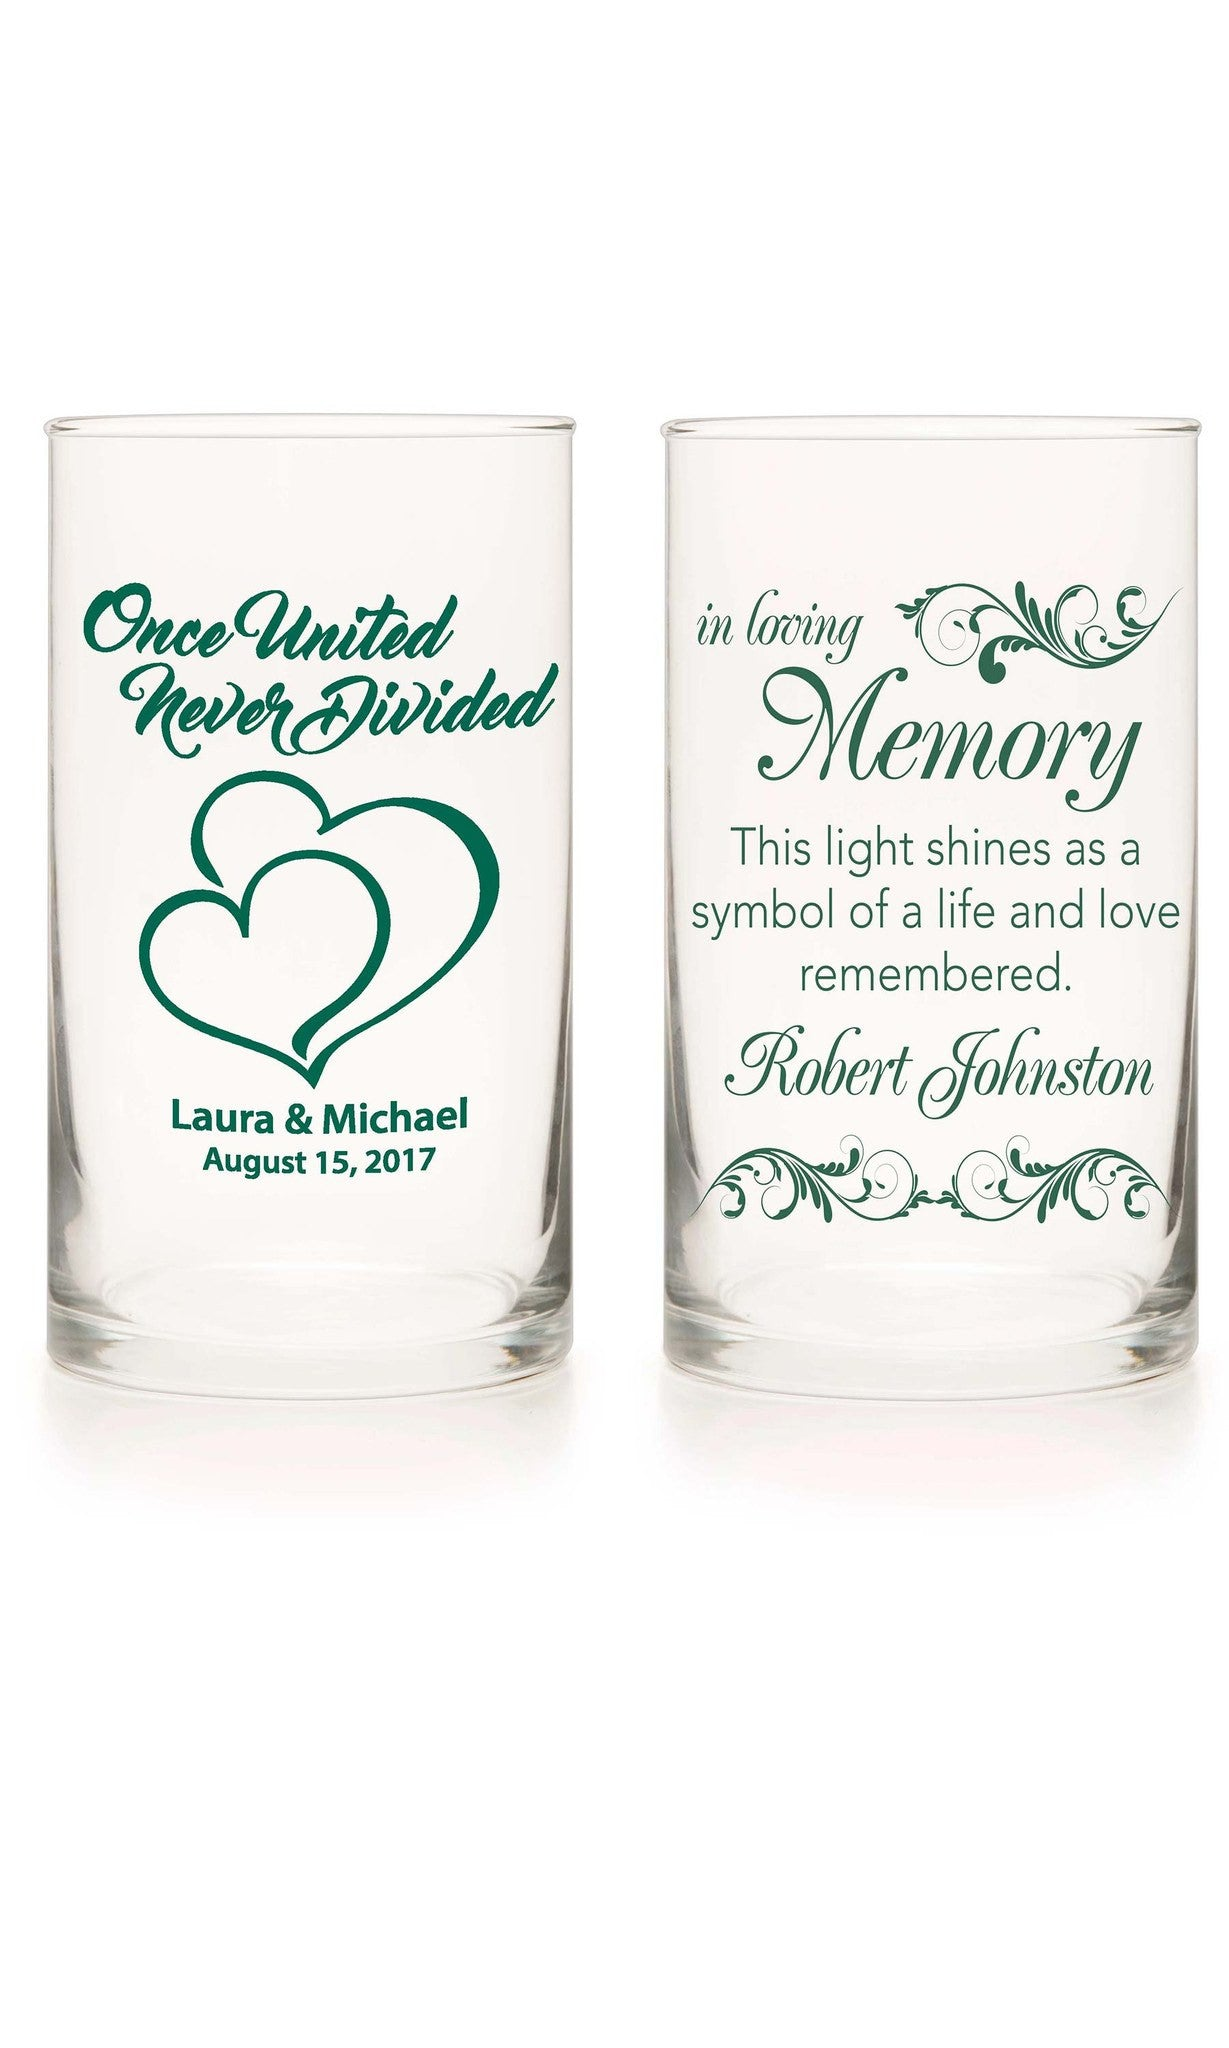 Unity Candle & Memorial Candle Set - Wedded Bliss Green - Personalized Candle Holders - Wedding Candles - 10